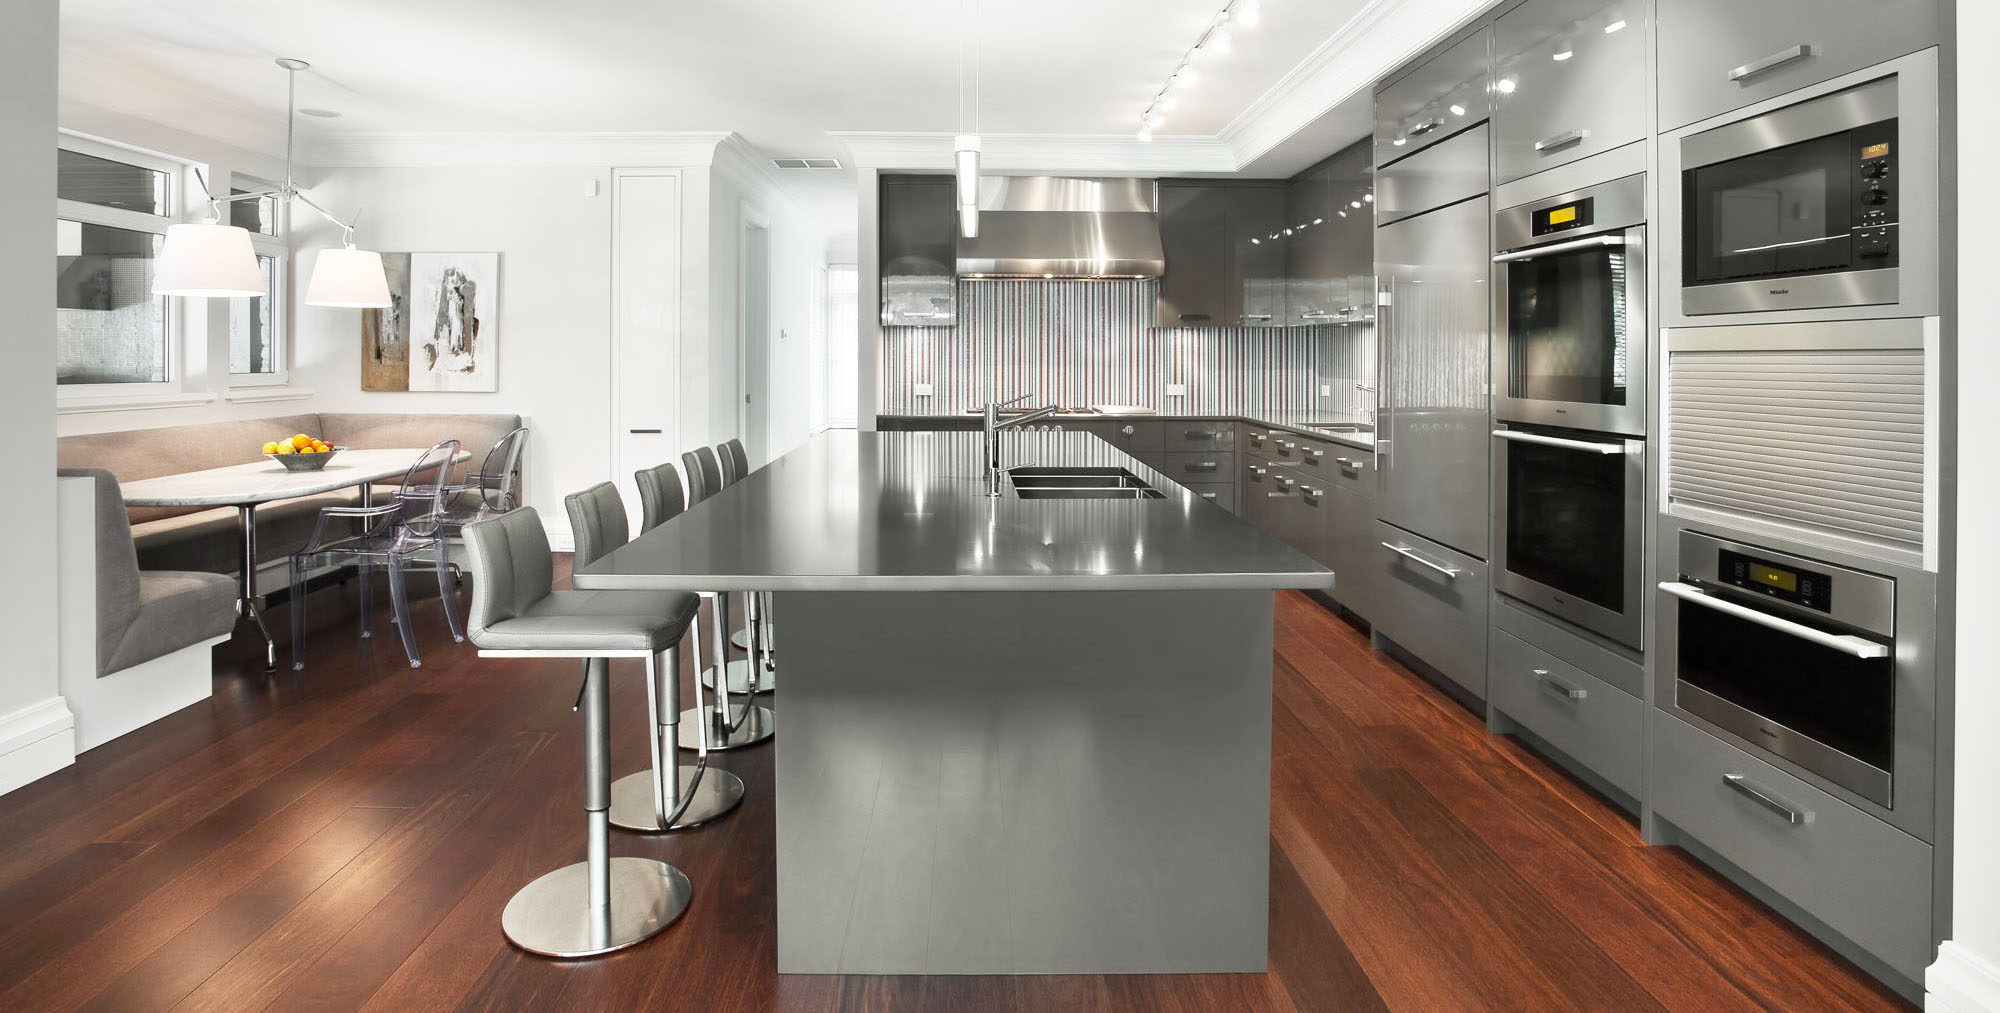 modern grey kitchen cabinets with hardwood flooring with light gray countertops